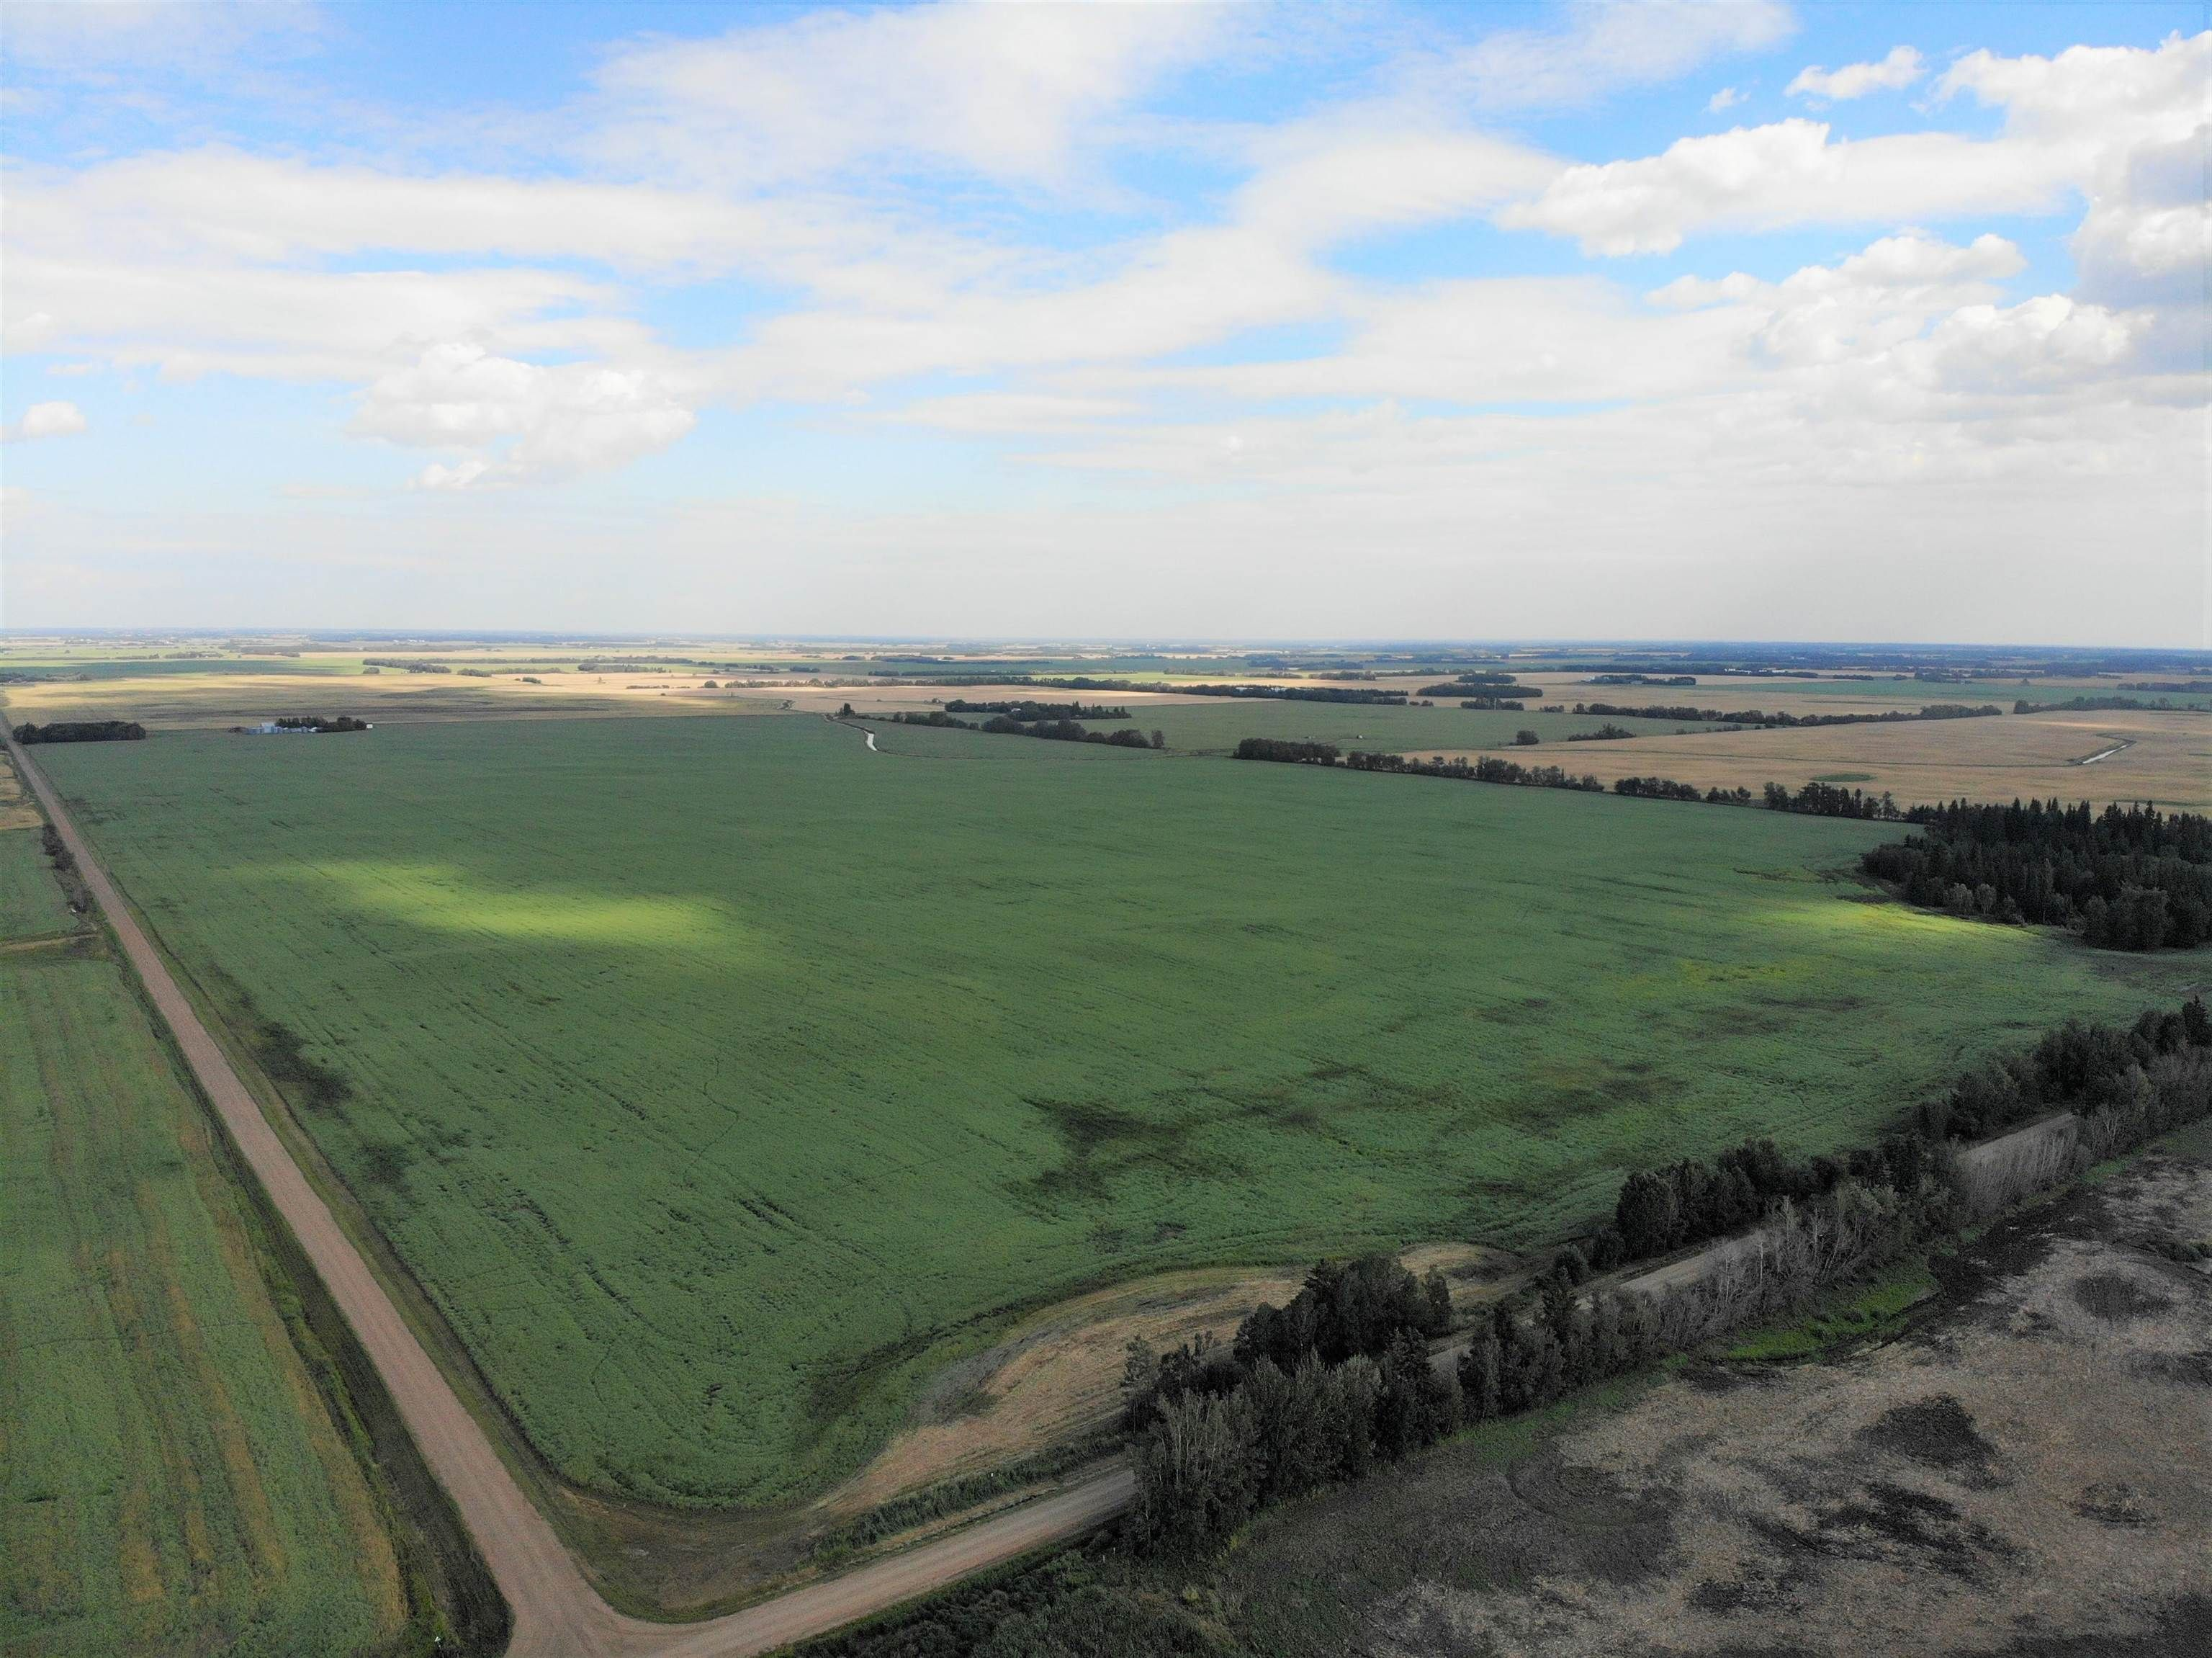 Main Photo: TWP 593 and RR 212: Rural Thorhild County Rural Land/Vacant Lot for sale : MLS®# E4259030